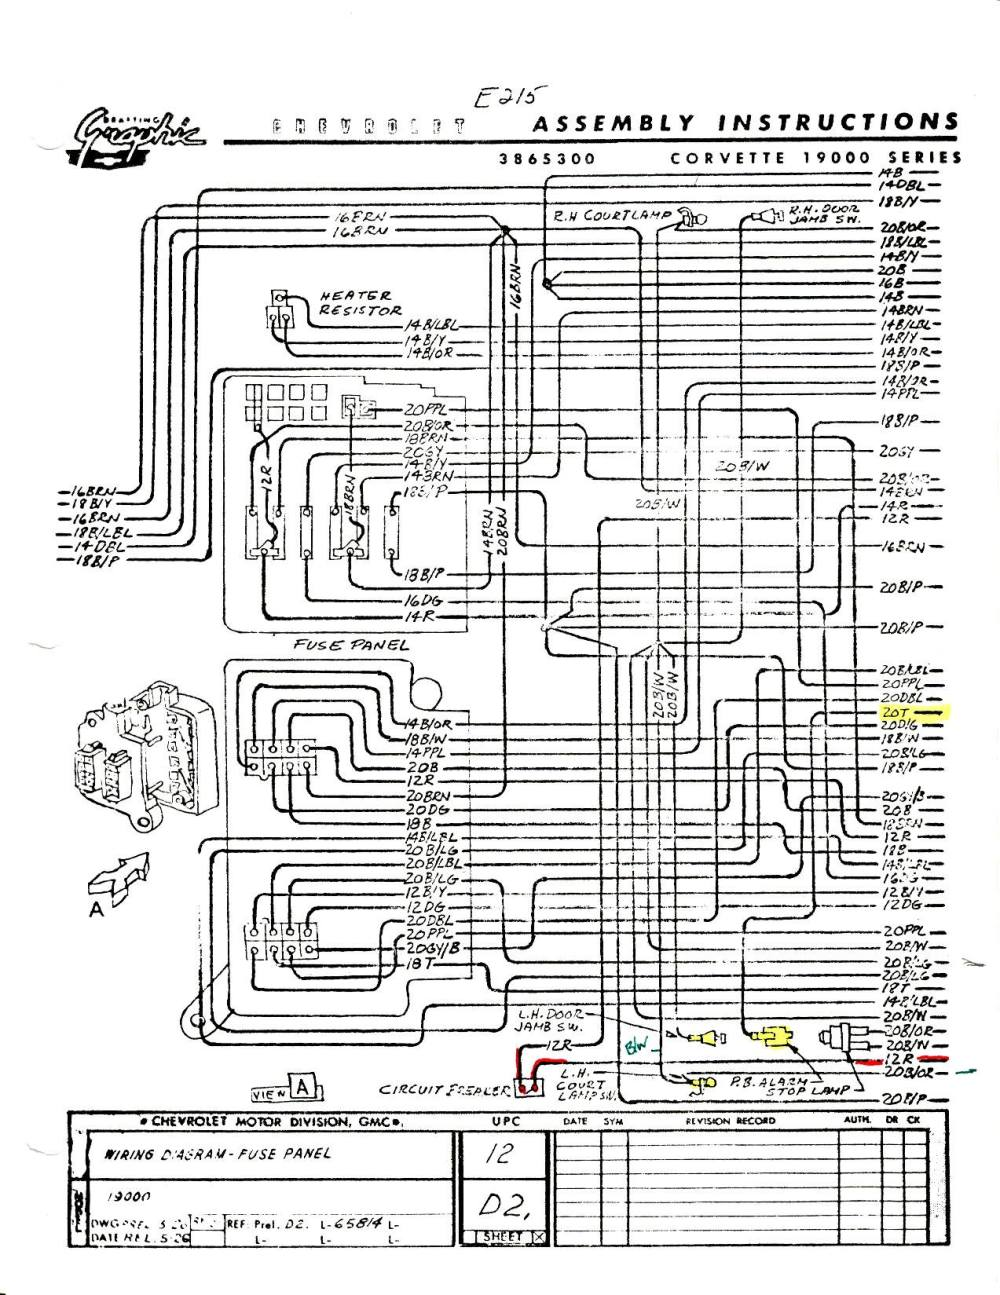 medium resolution of c4 corvette wiring harness diagram wiring diagram note c4 corvette wiring harness c4 corvette wiring harness